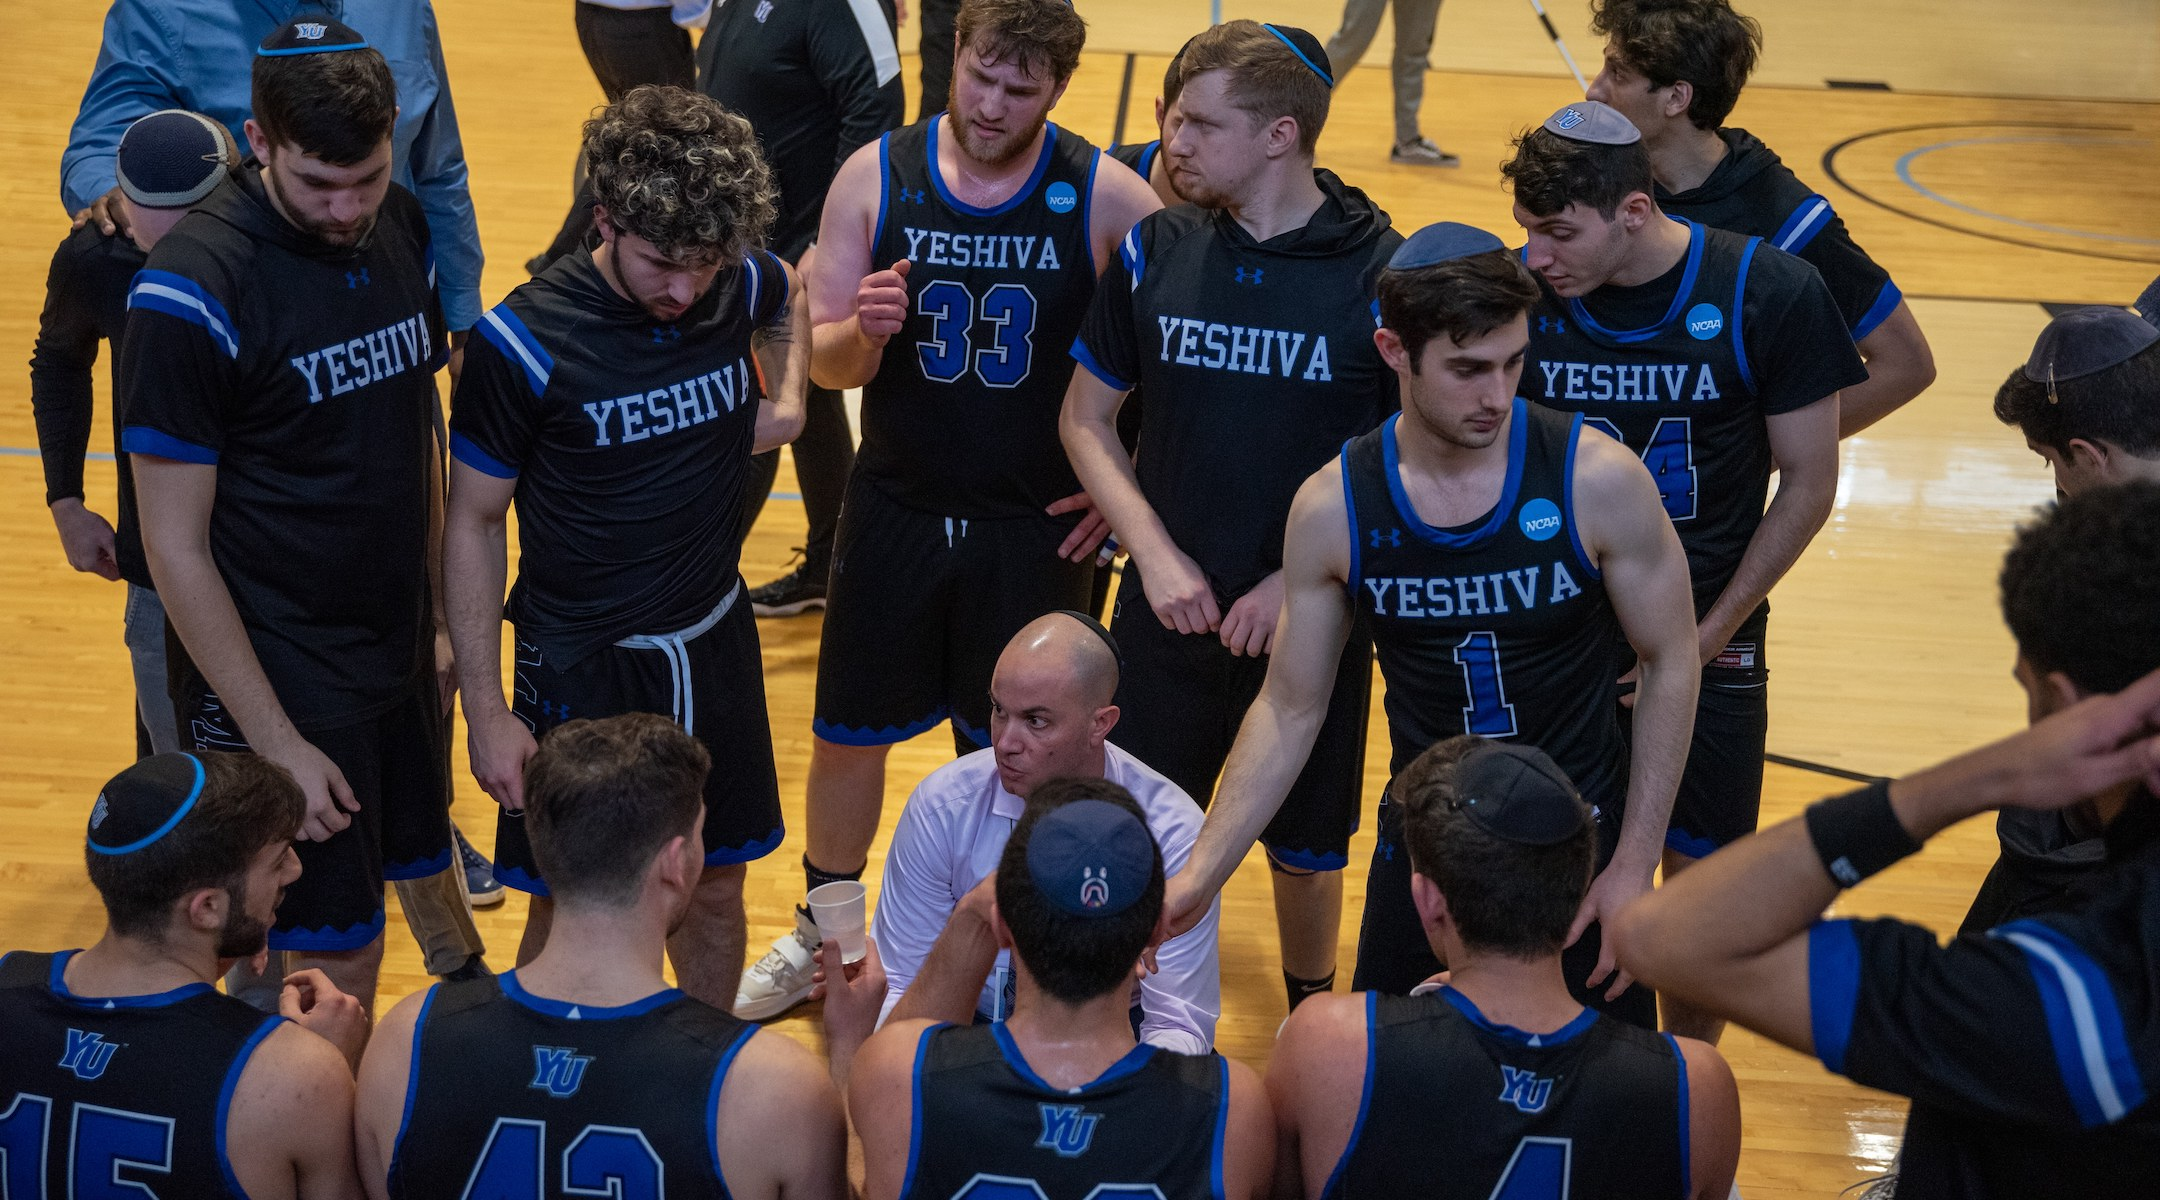 Yeshiva University men's basketball is on a 35-game winning streak